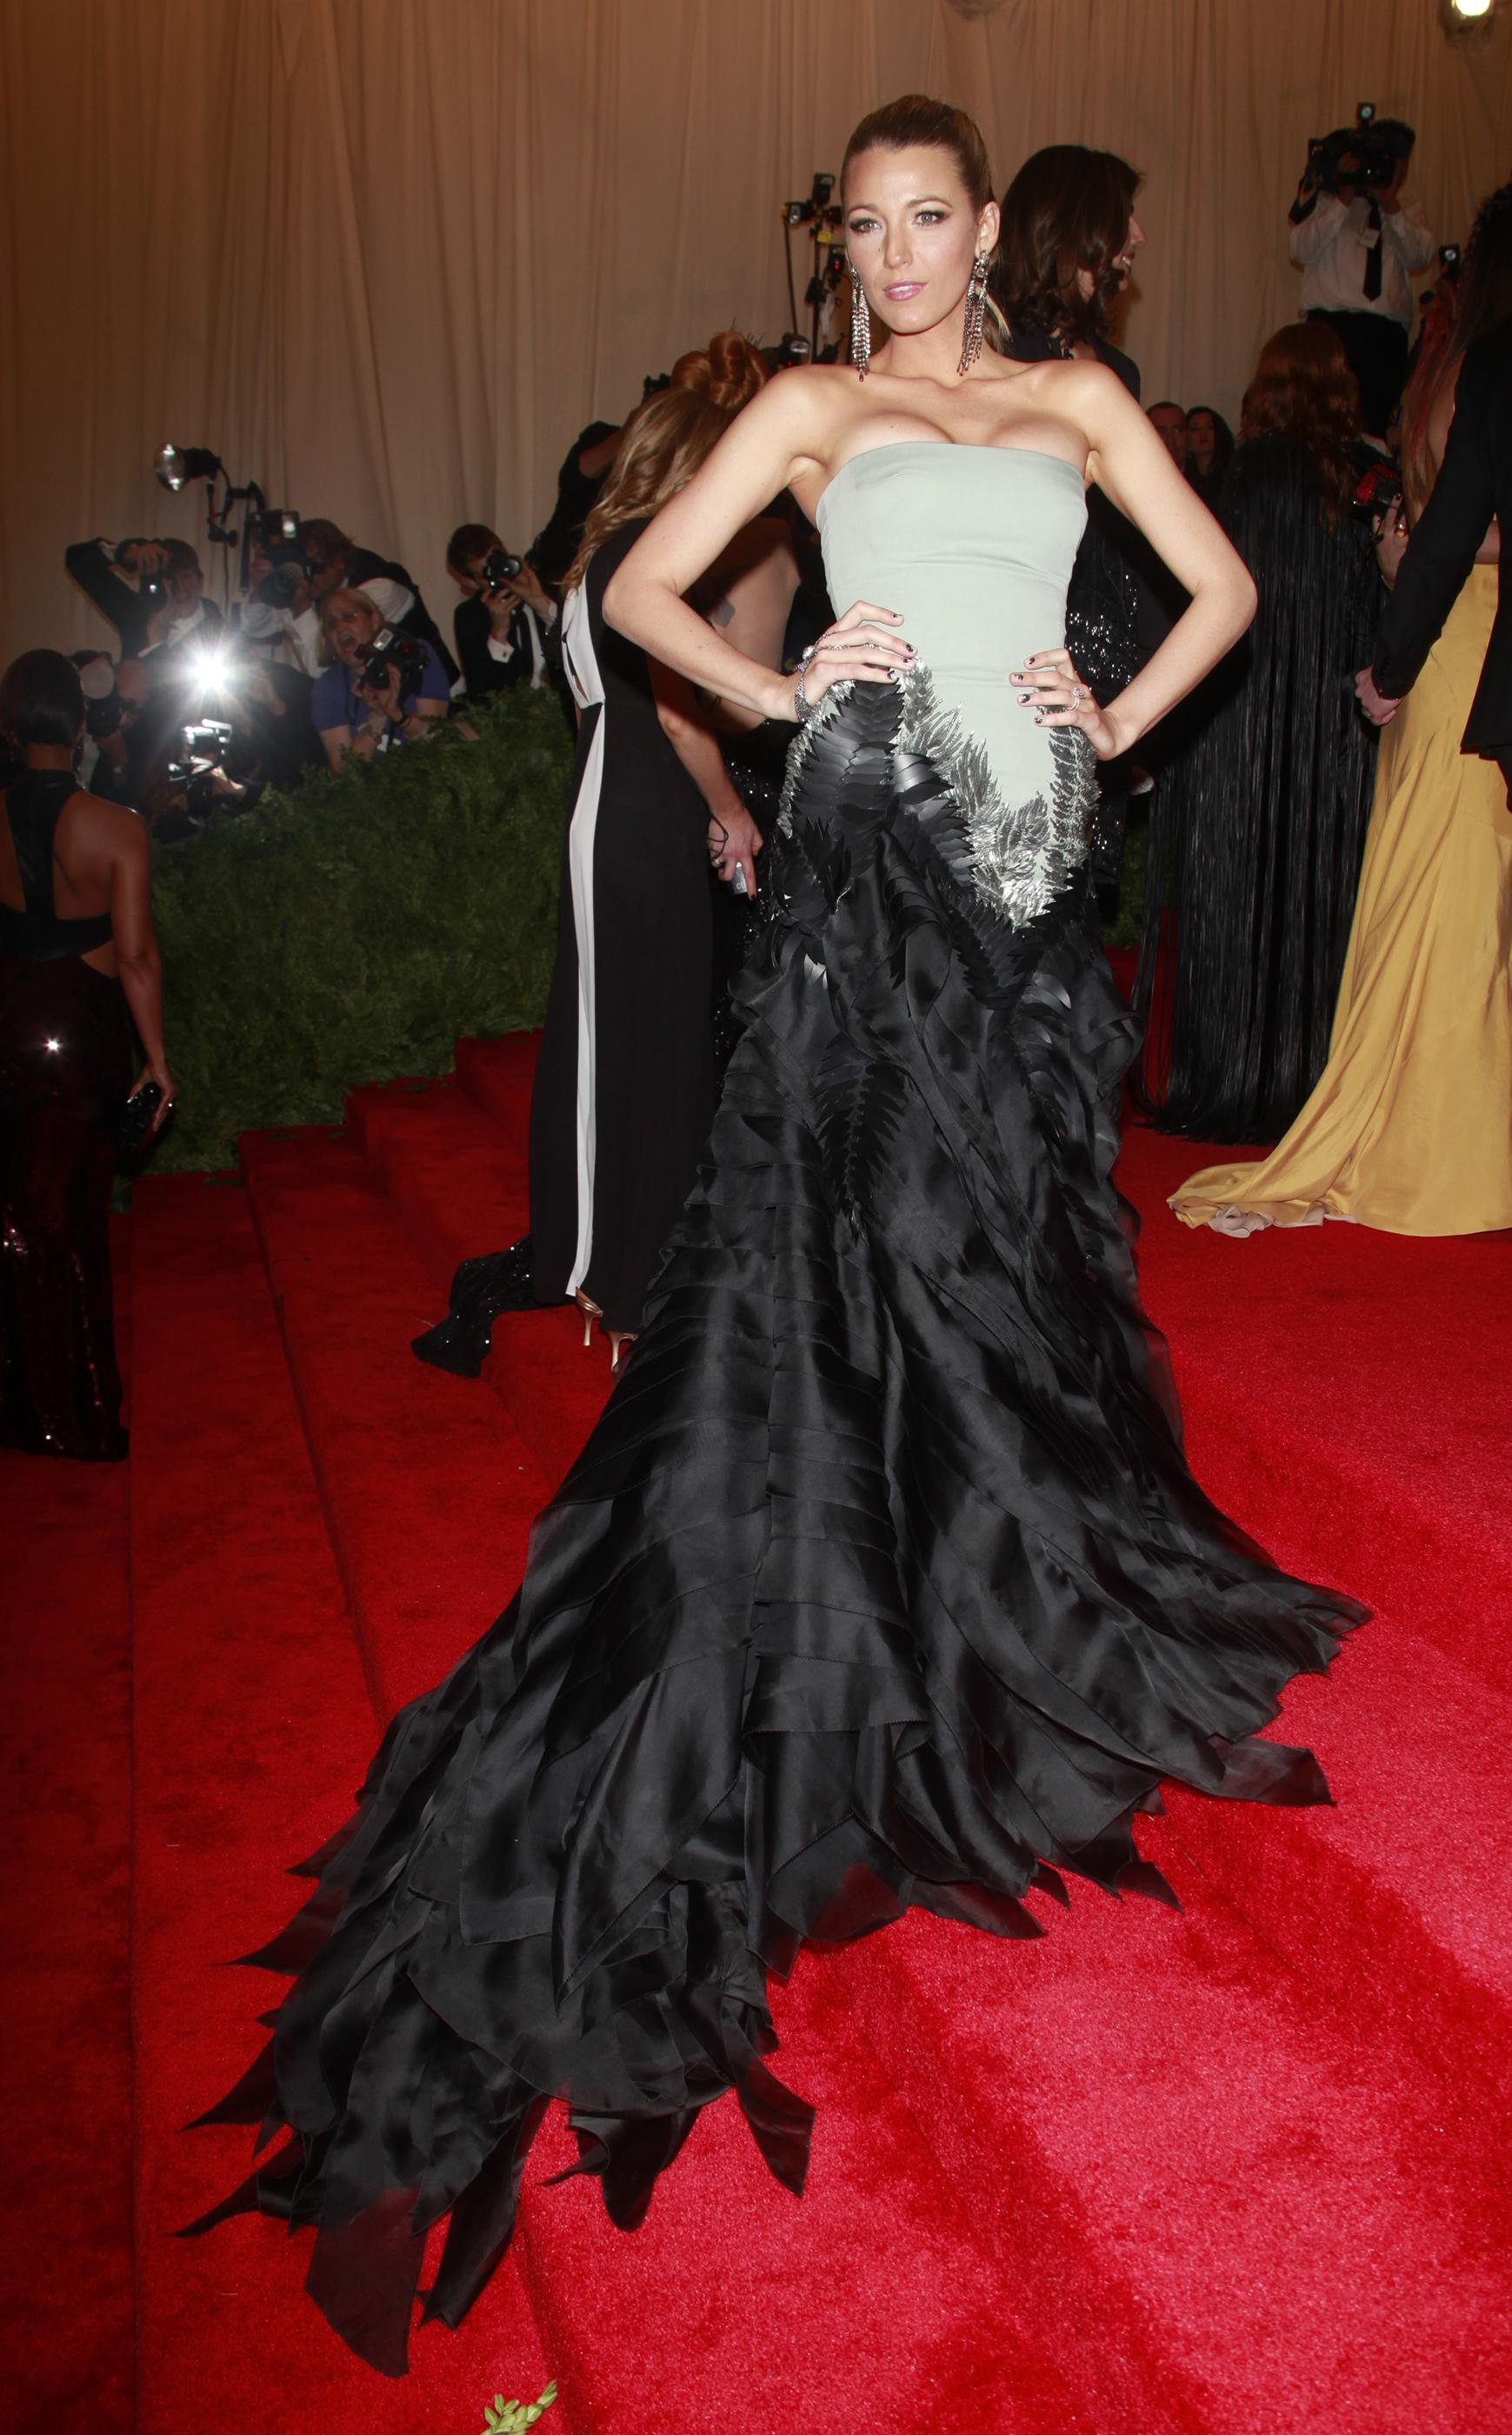 Met Gala 2013 Best And Worst Dressed On The Red Carpet Of